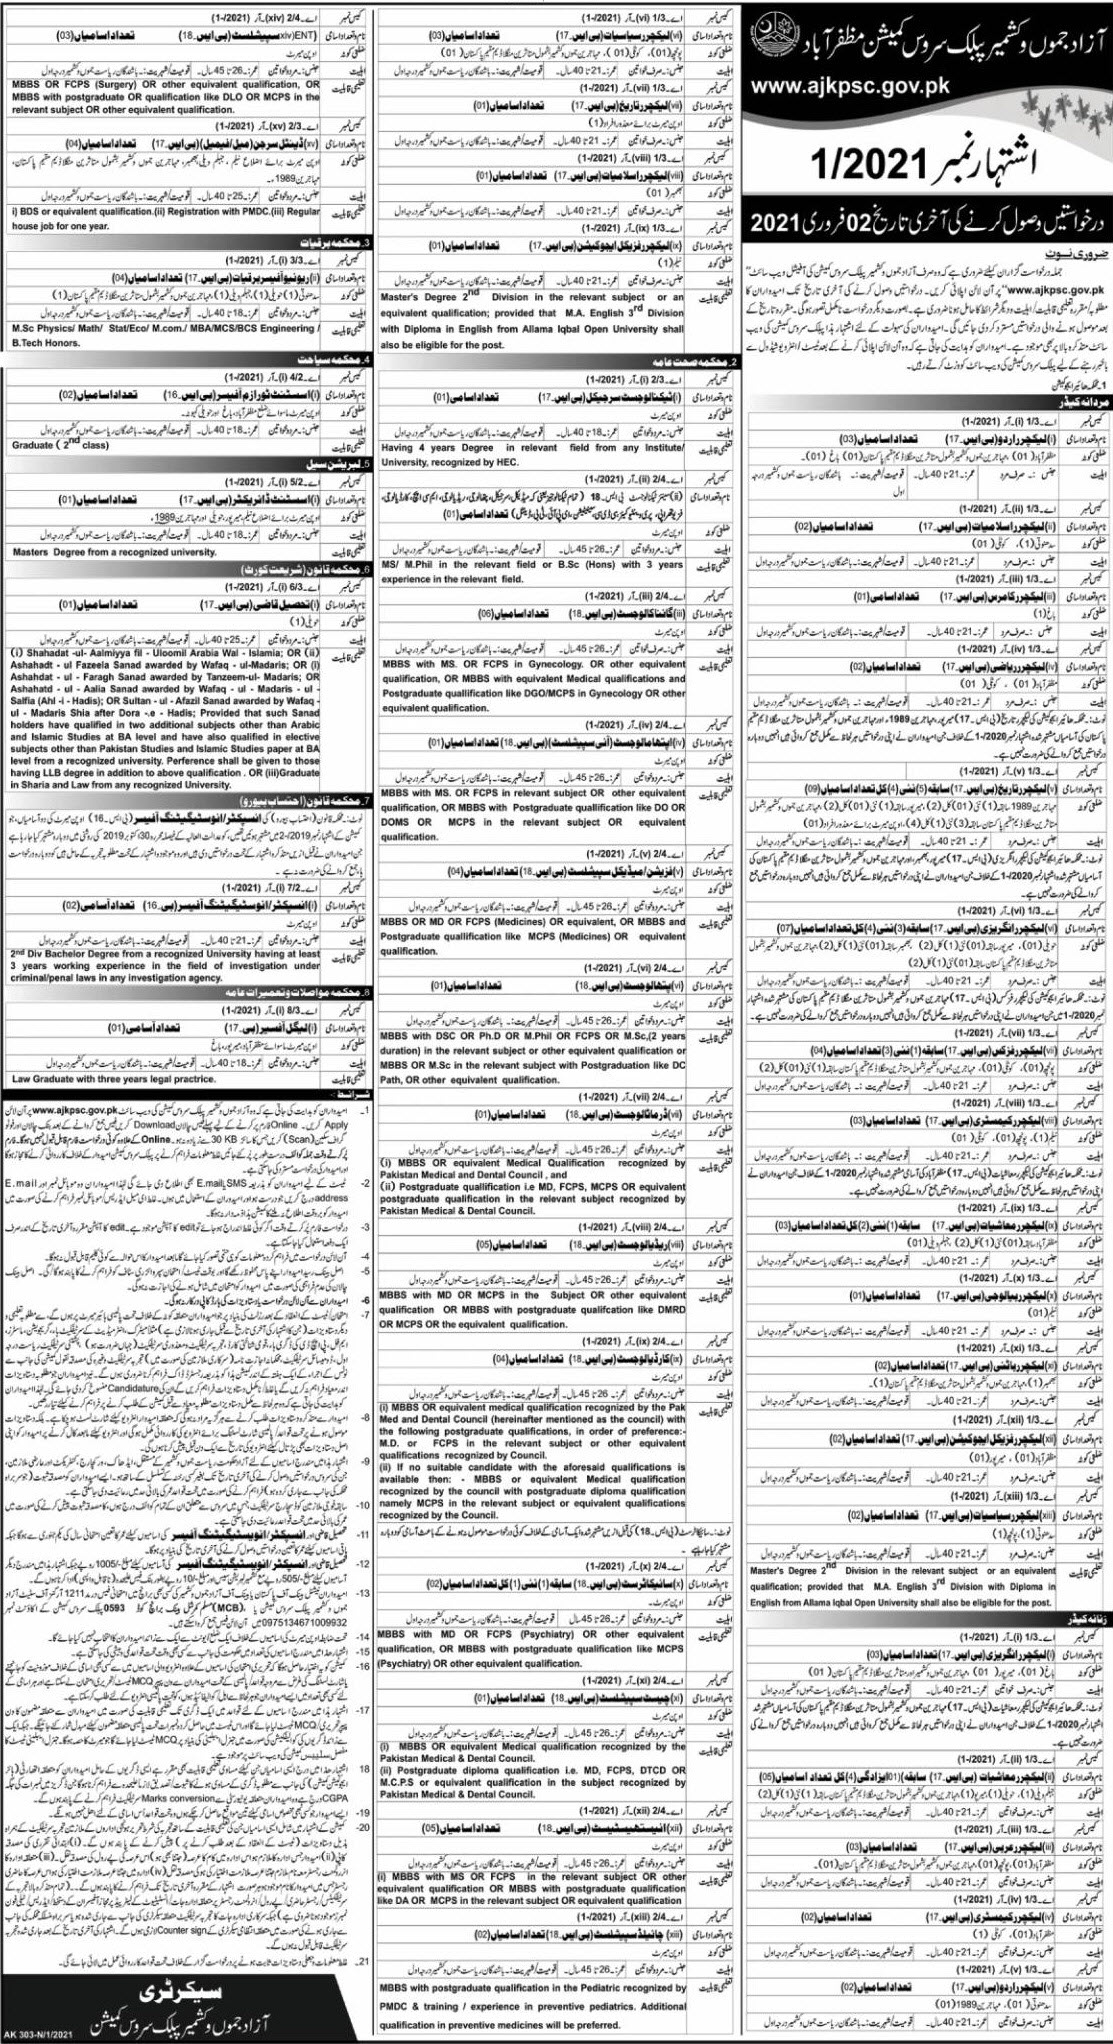 Health Department jobs newspaper ad for Pathologist in Muzaffarabad